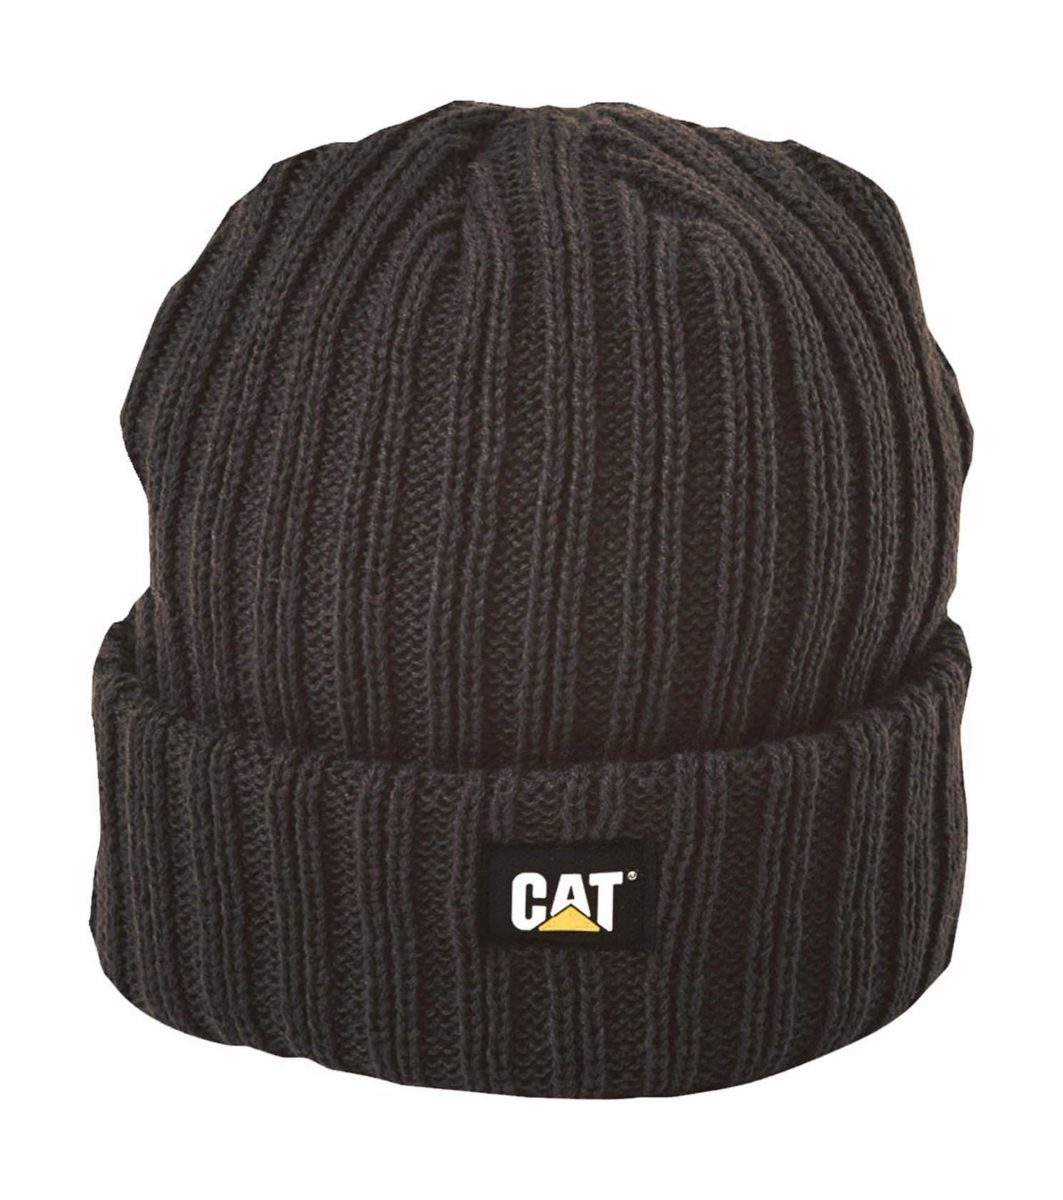 CAT Rib Watch Cap Beanie